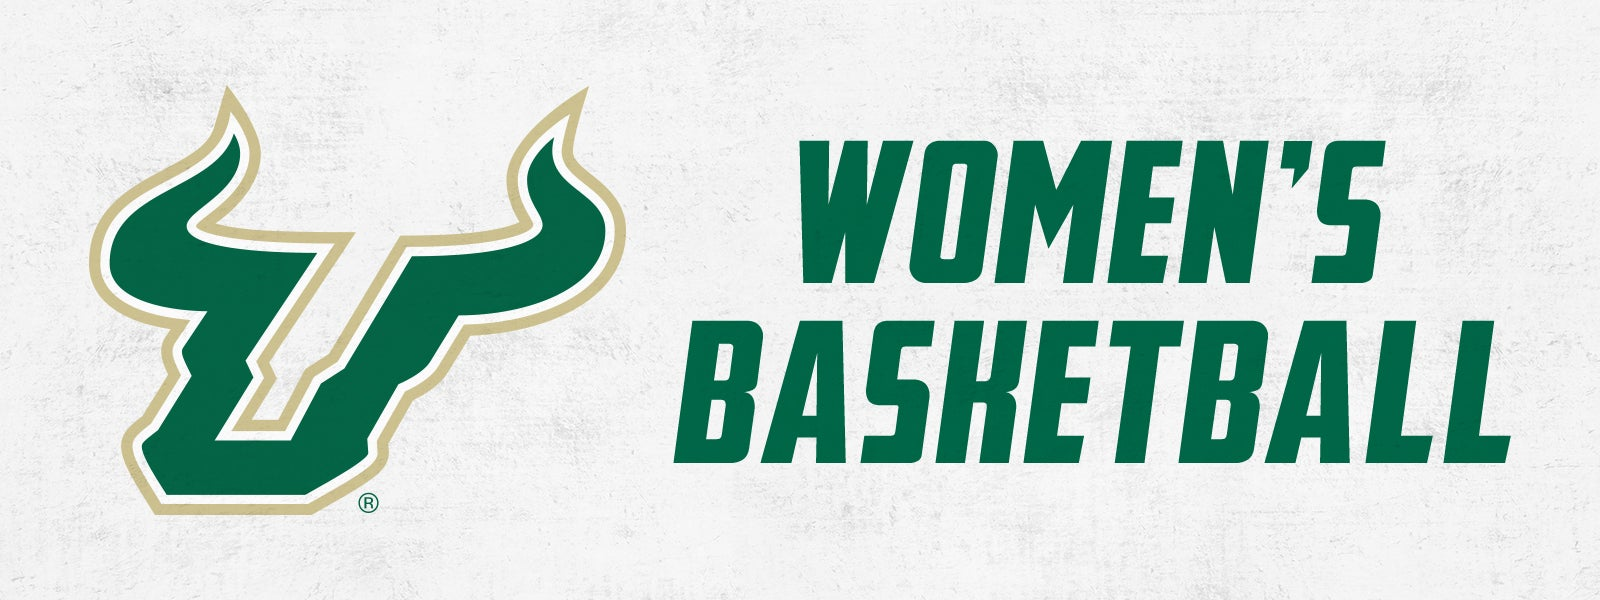 USF Women's Basketball vs. SMU